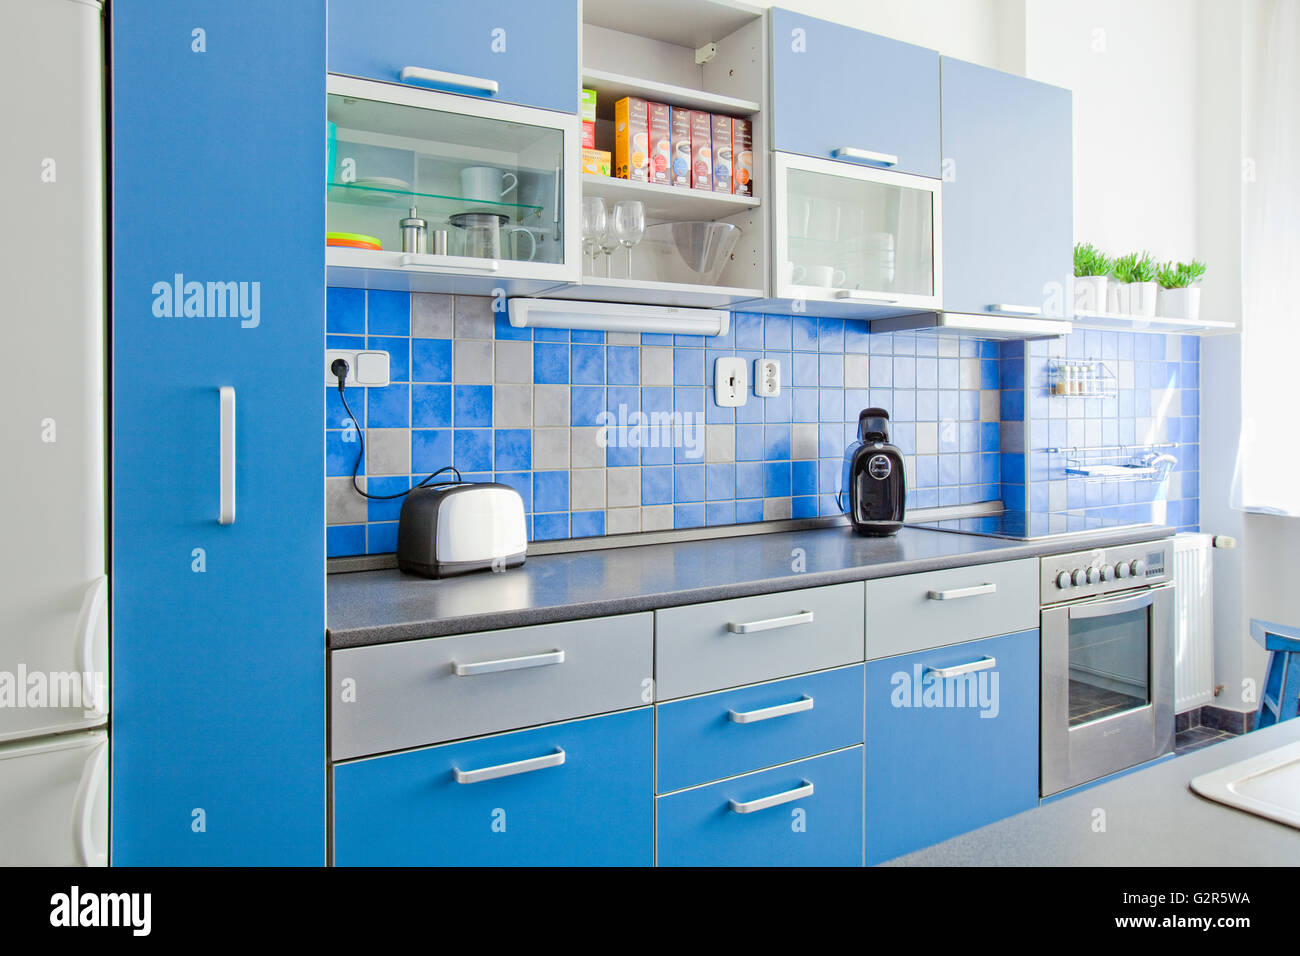 Kitchen Stock Photos & Kitchen Stock Images - Alamy